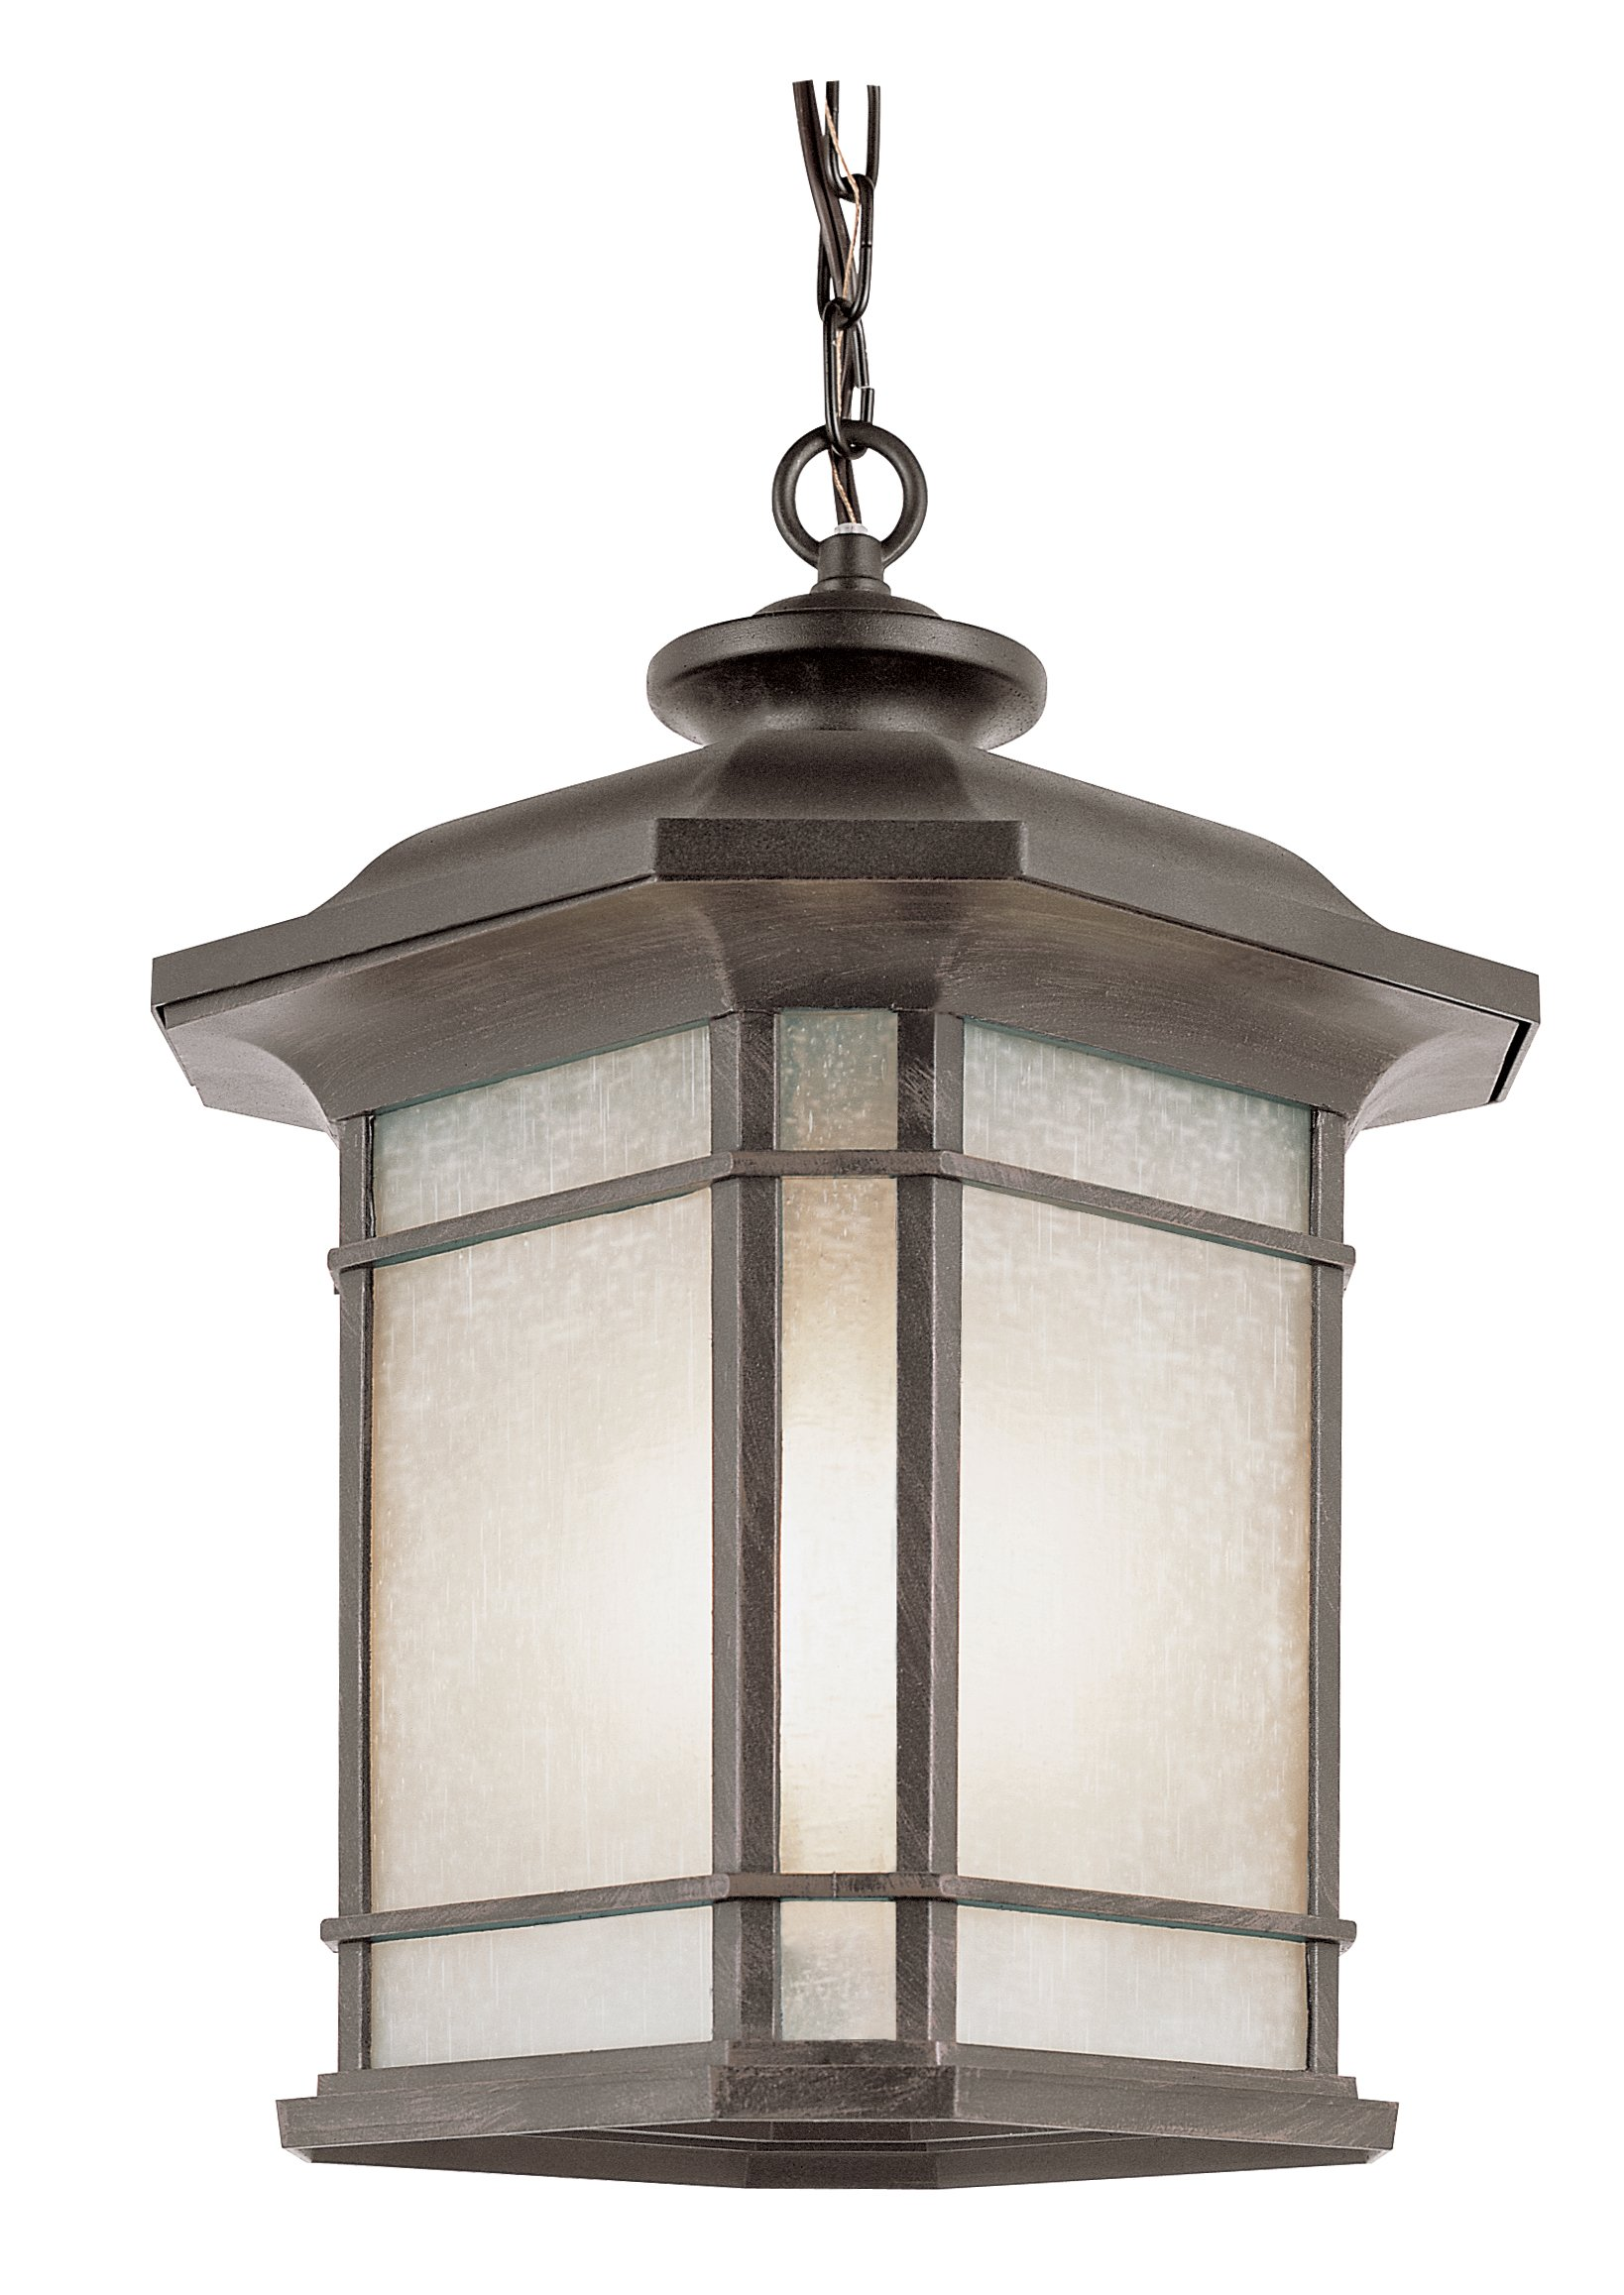 Transglobe Lighting 5825 RT Outdoor Hanging Pendant with Tea Stain Linen Shade, Rust Finished